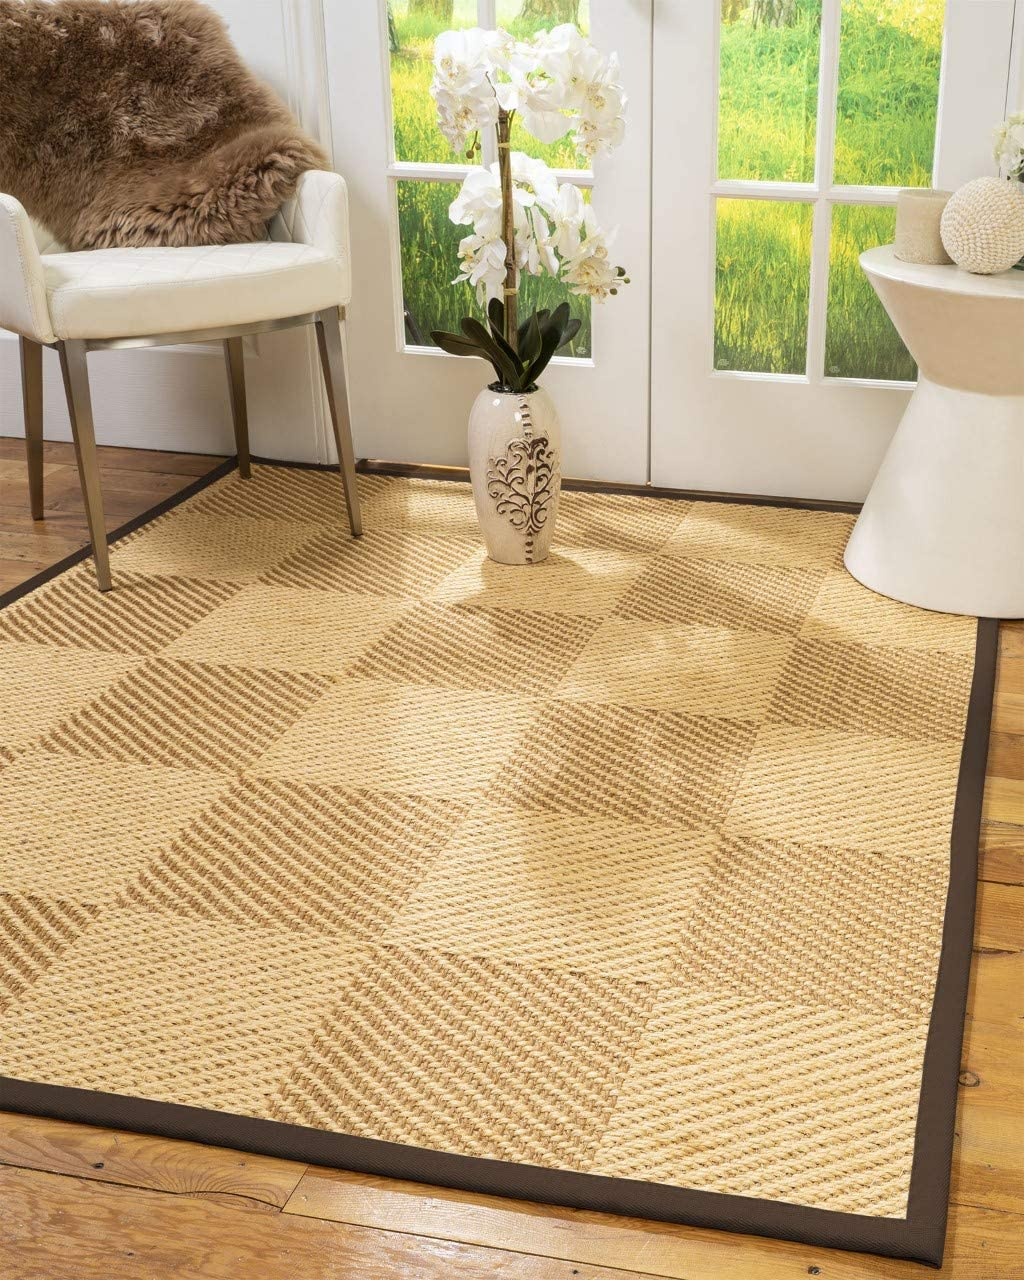 Natural Area Rugs 100 Natural Fiber Handmade Osaka, Beige Gold Sisal Rug, 12 x 18 Fudge Border